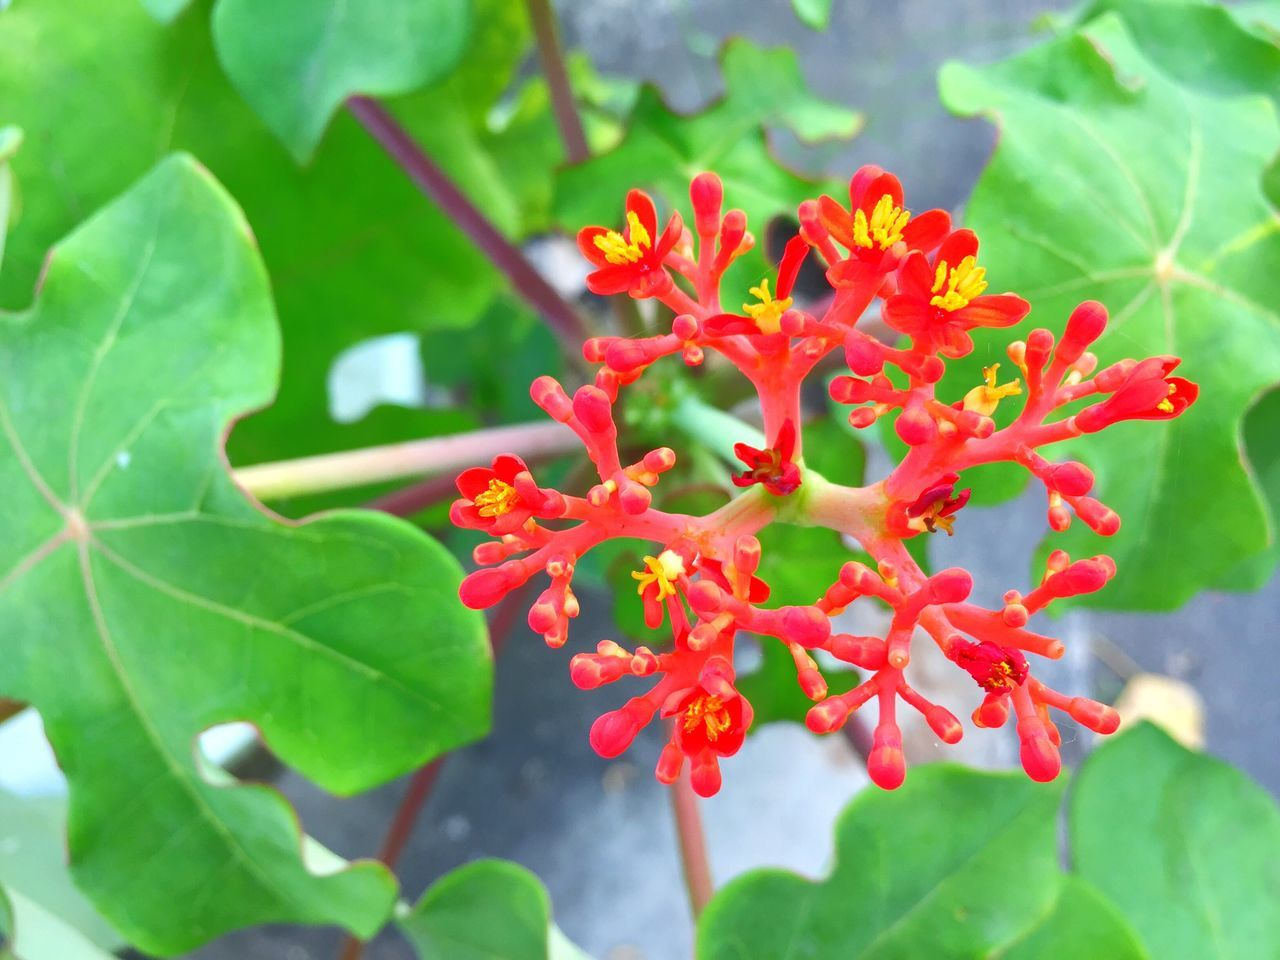 growth, leaf, plant, beauty in nature, nature, red, petal, flower, freshness, green color, fragility, ixora, no people, blooming, flower head, day, outdoors, close-up